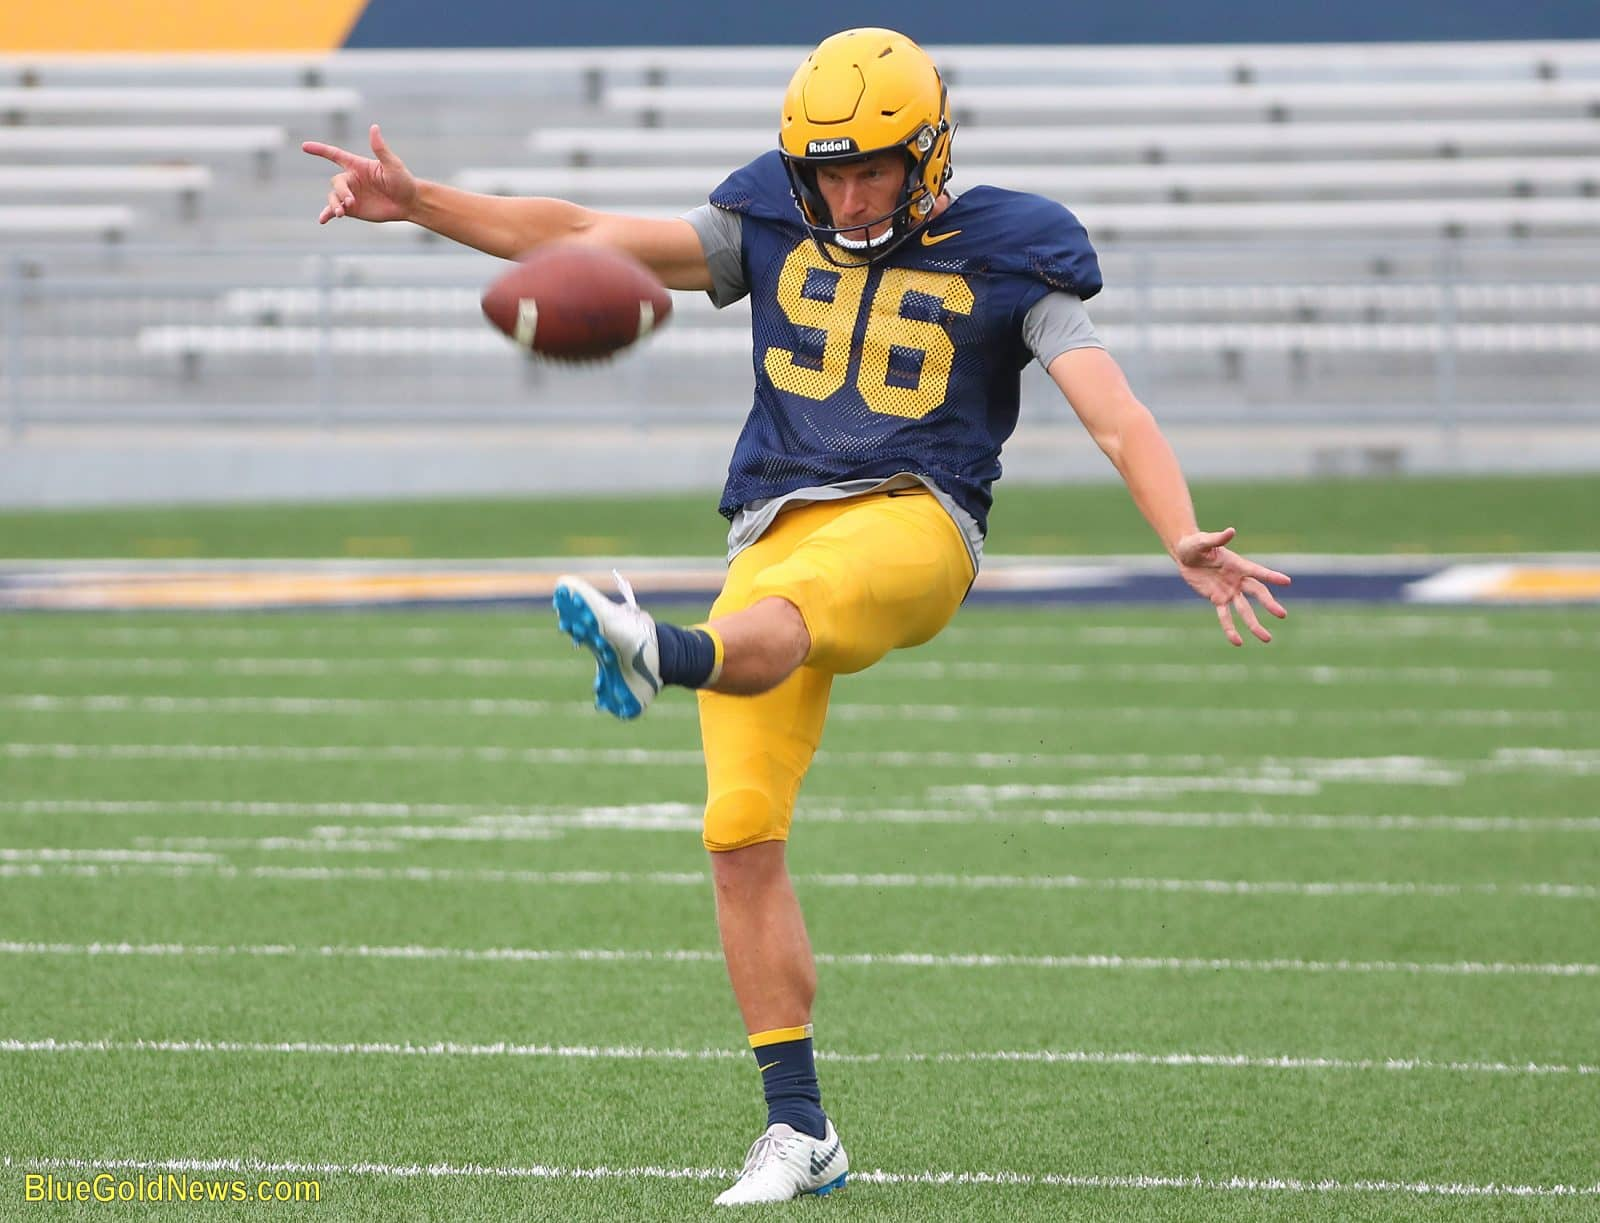 West Virginia punter Josh Growden sends a kick on its way